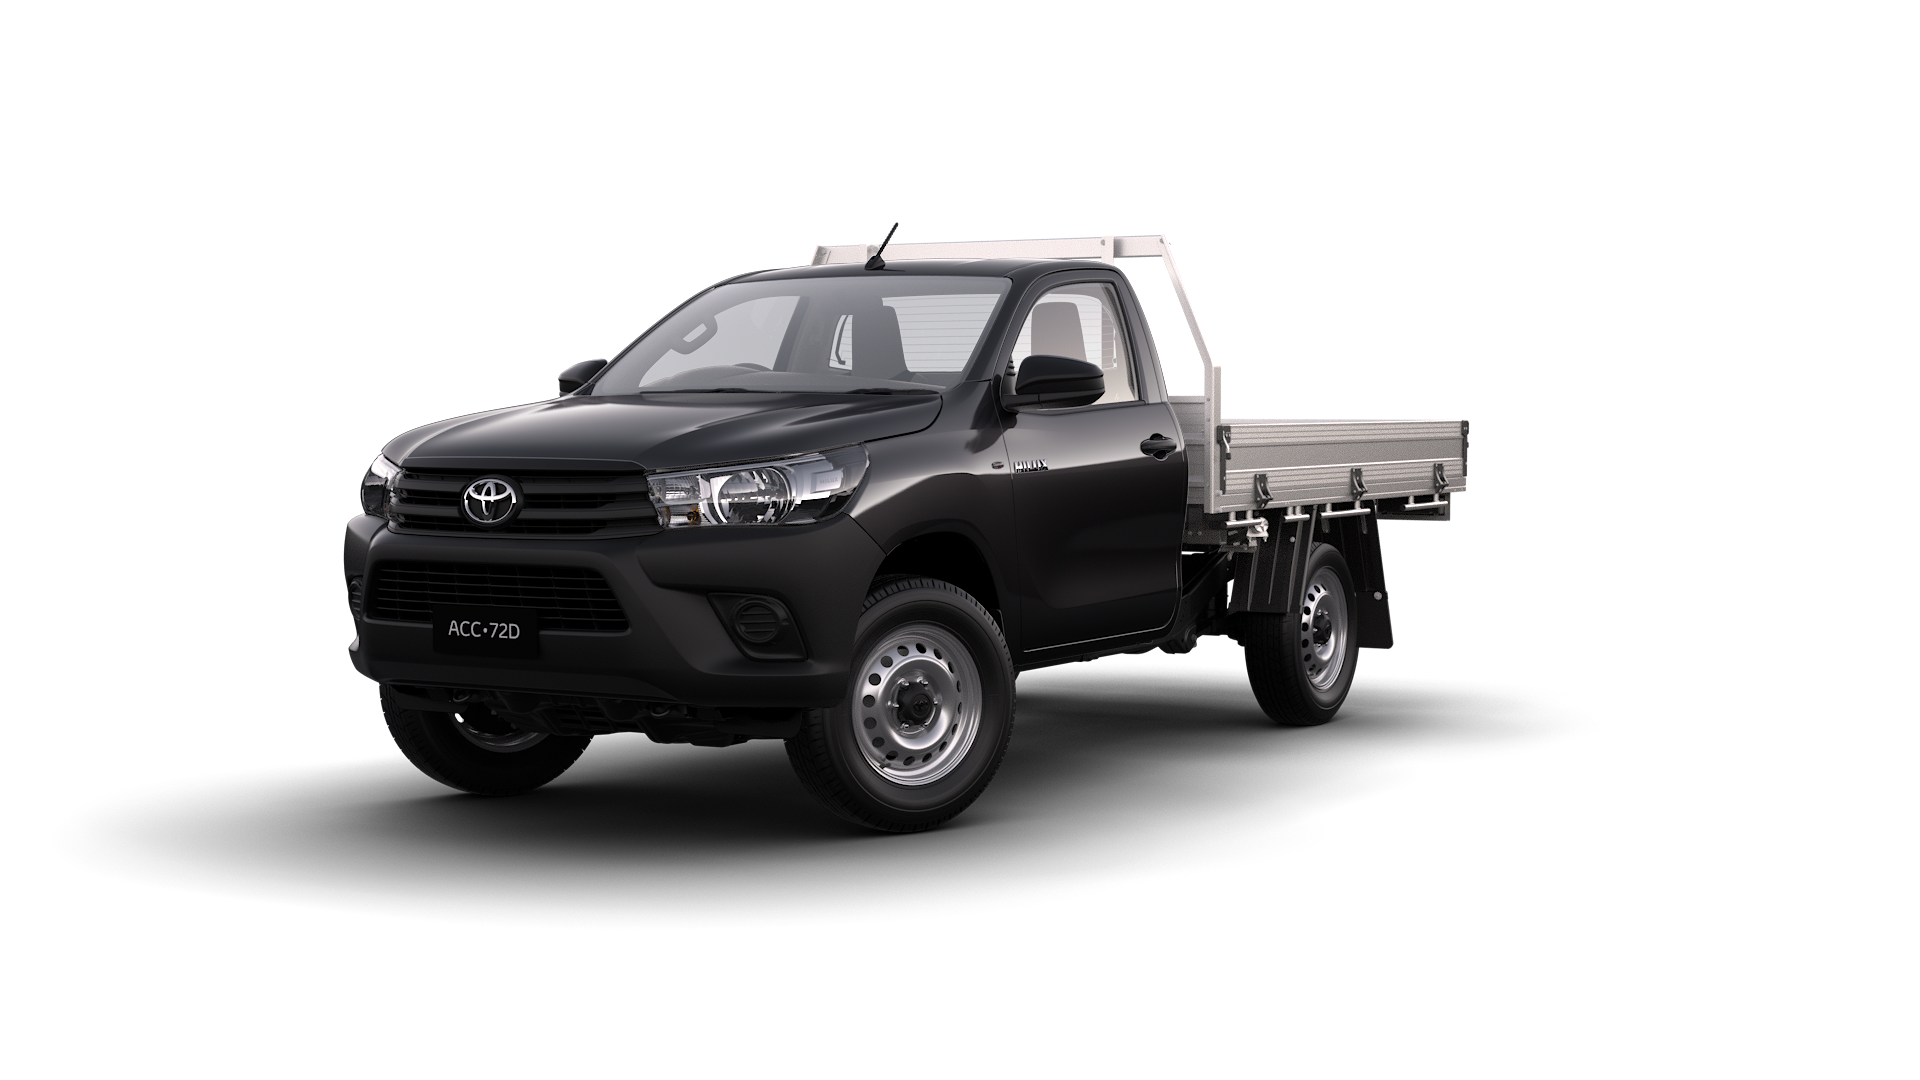 HQ Toyota Hilux Wallpapers | File 920.47Kb